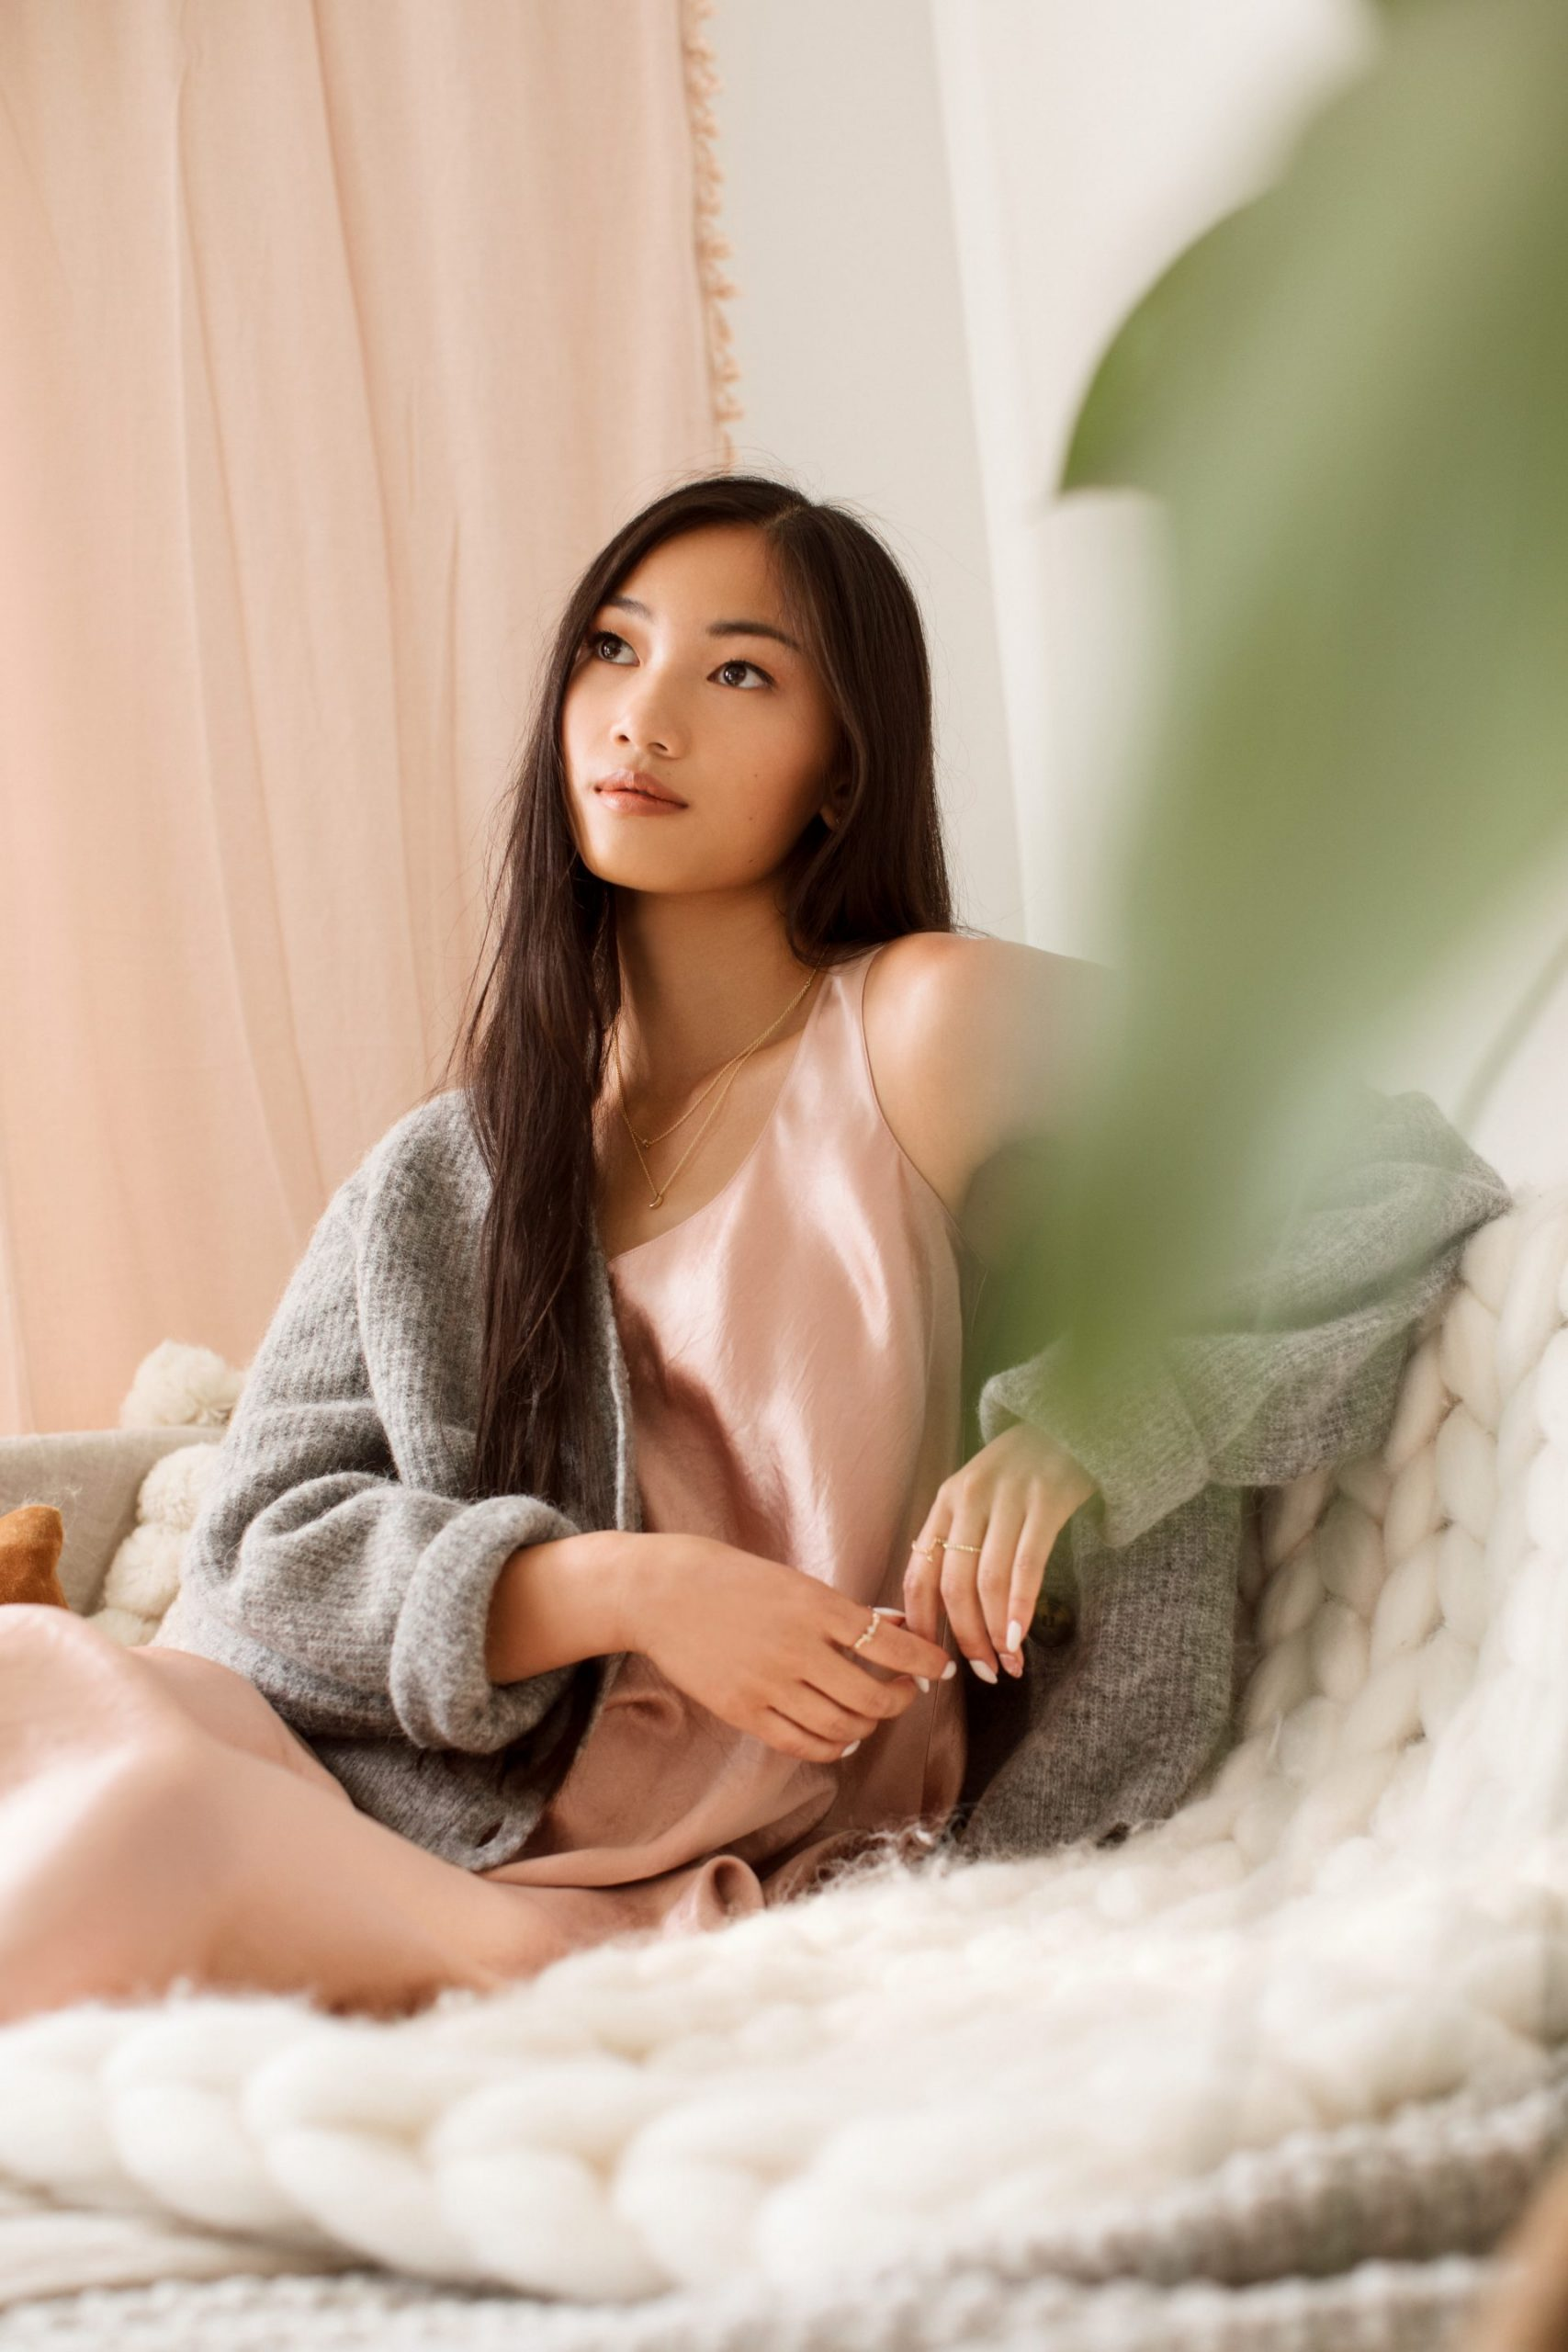 Girl relaxing on cozy couch.